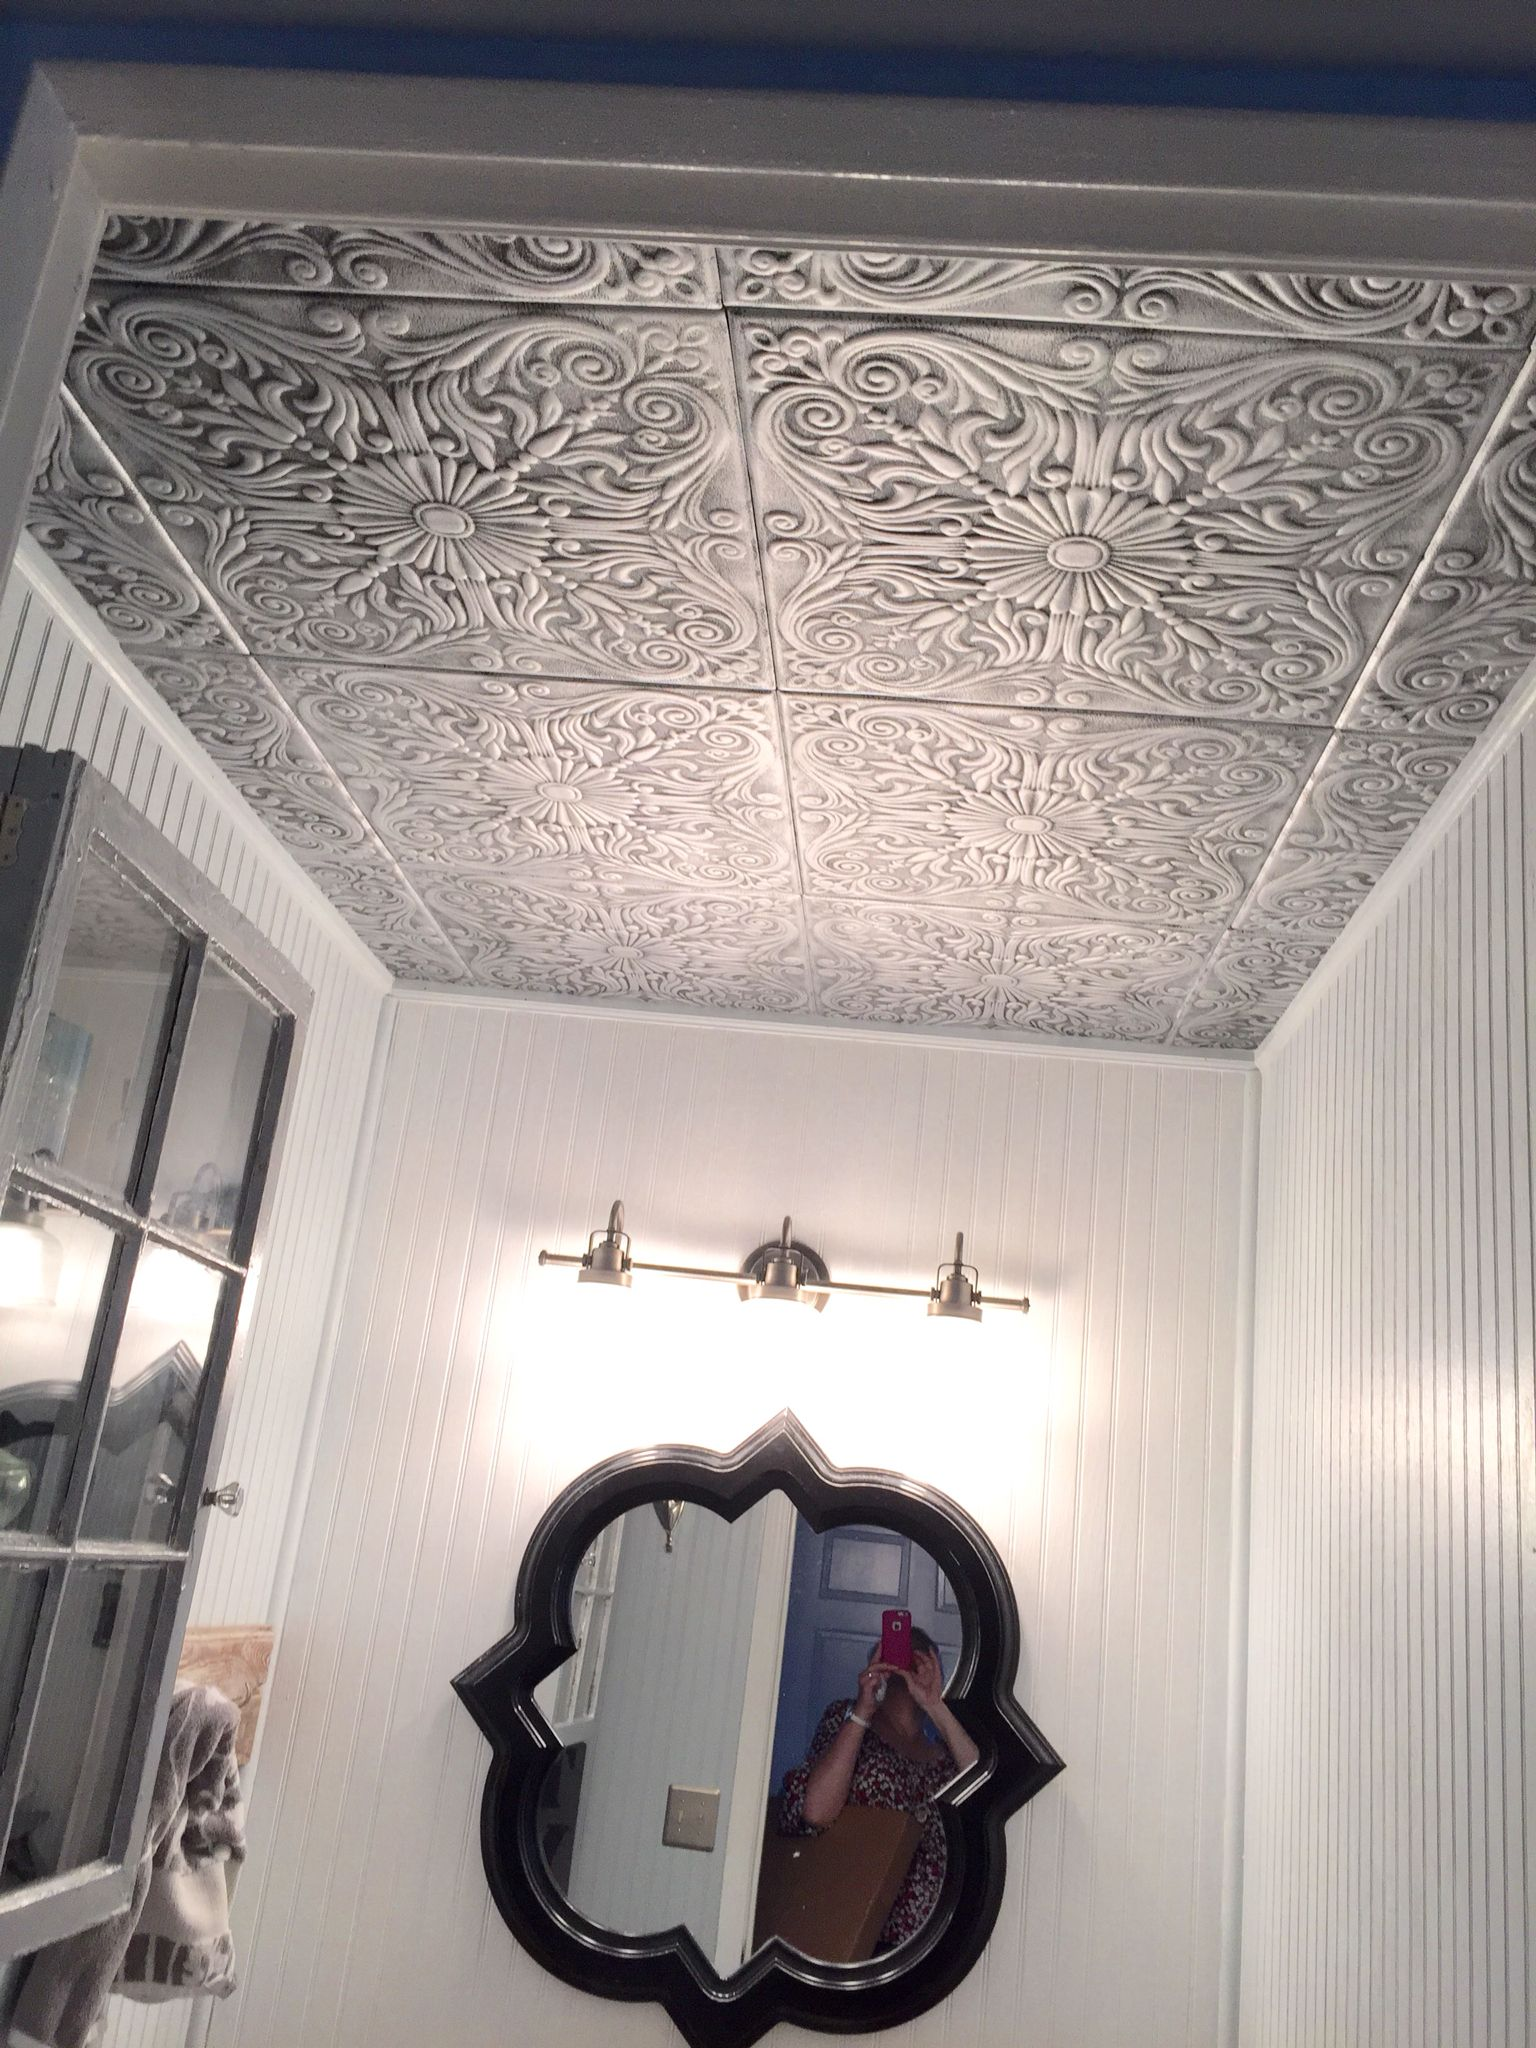 Powder room bath remedy for popcorn ceiling this was quick and powder room bath remedy for popcorn ceiling i removed the popcorn first what a messy project but these ceiling tiles can go right over if you dont dailygadgetfo Gallery